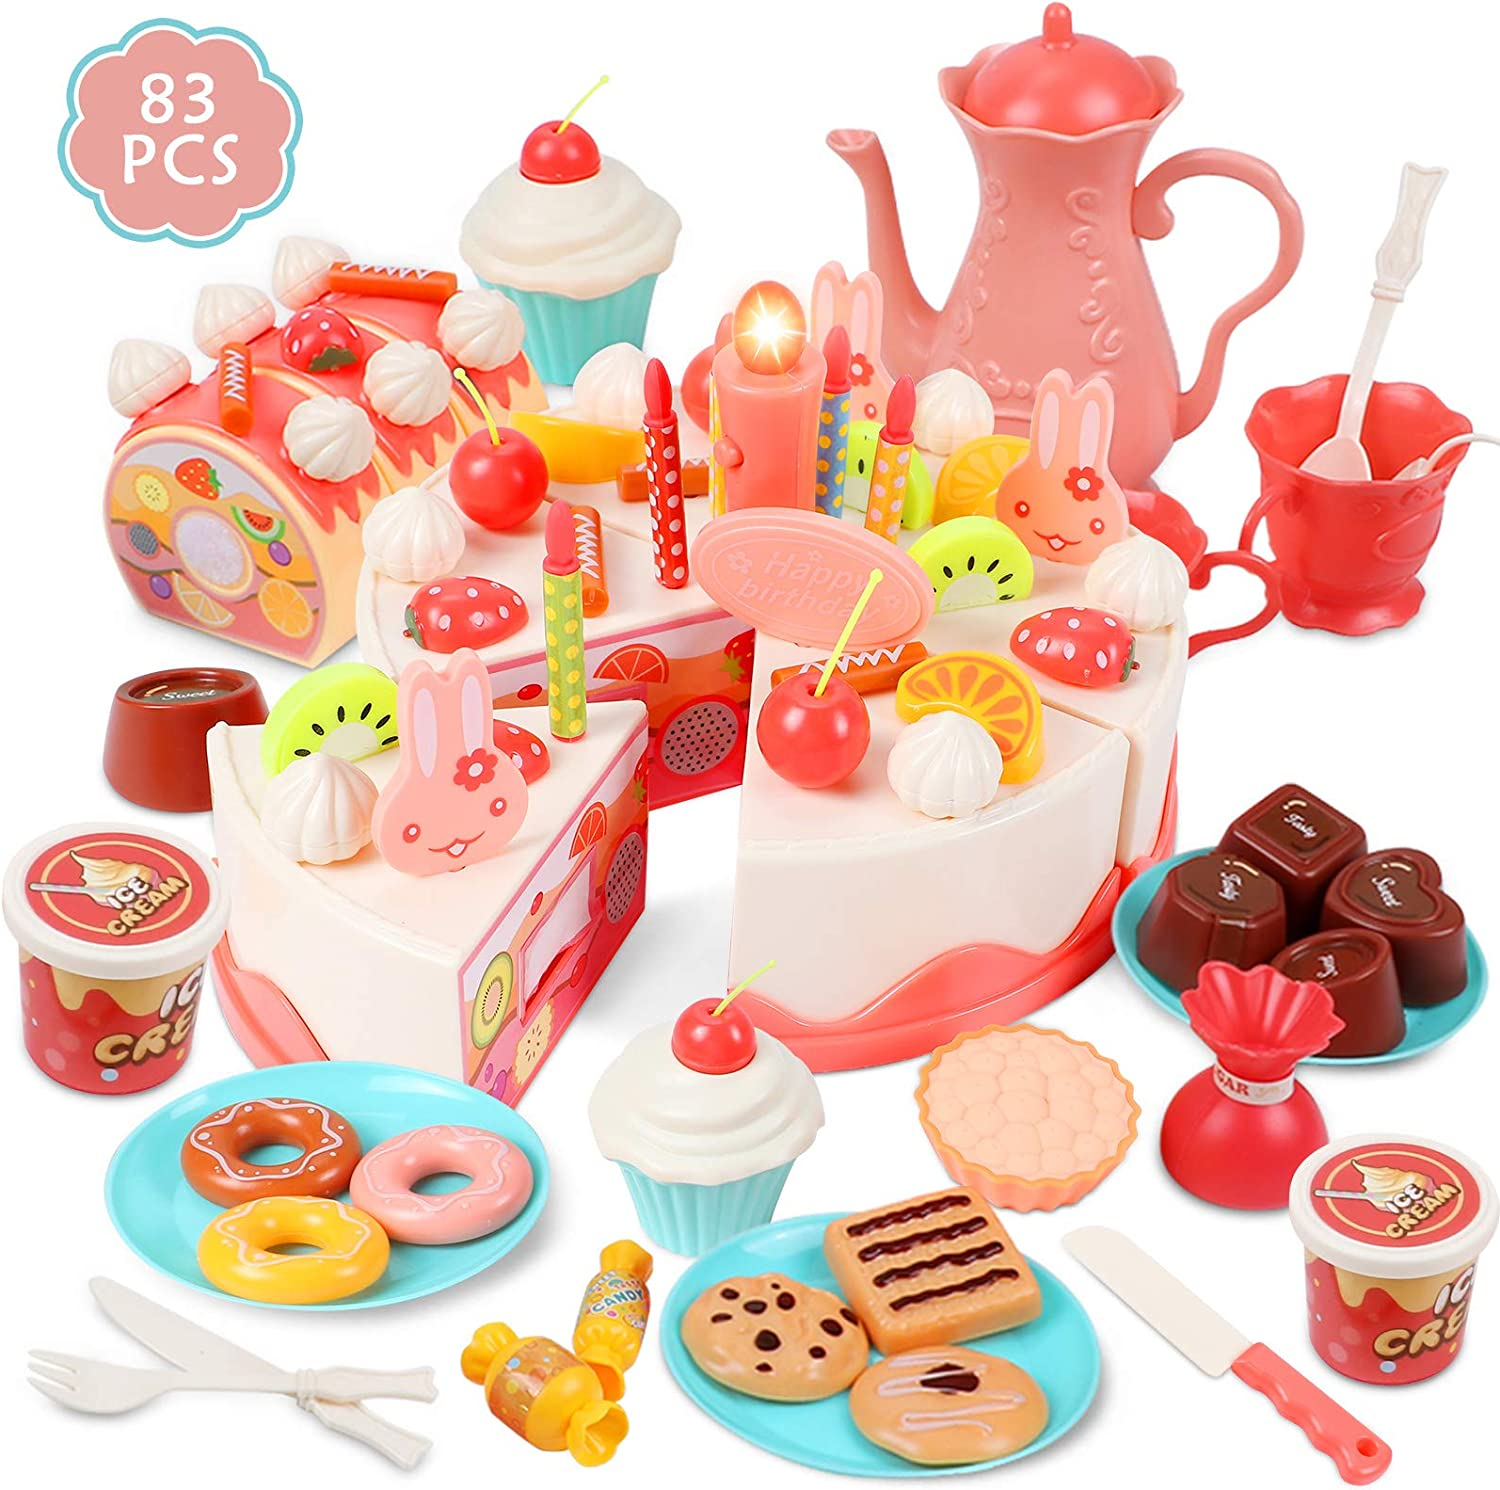 G.C Birthday Cake Toy for Kids Pretend Play Food Set with Light 83Pcs DIY Cutting Dessert Donut Ice Cream Toy Toddler Tea Party Set